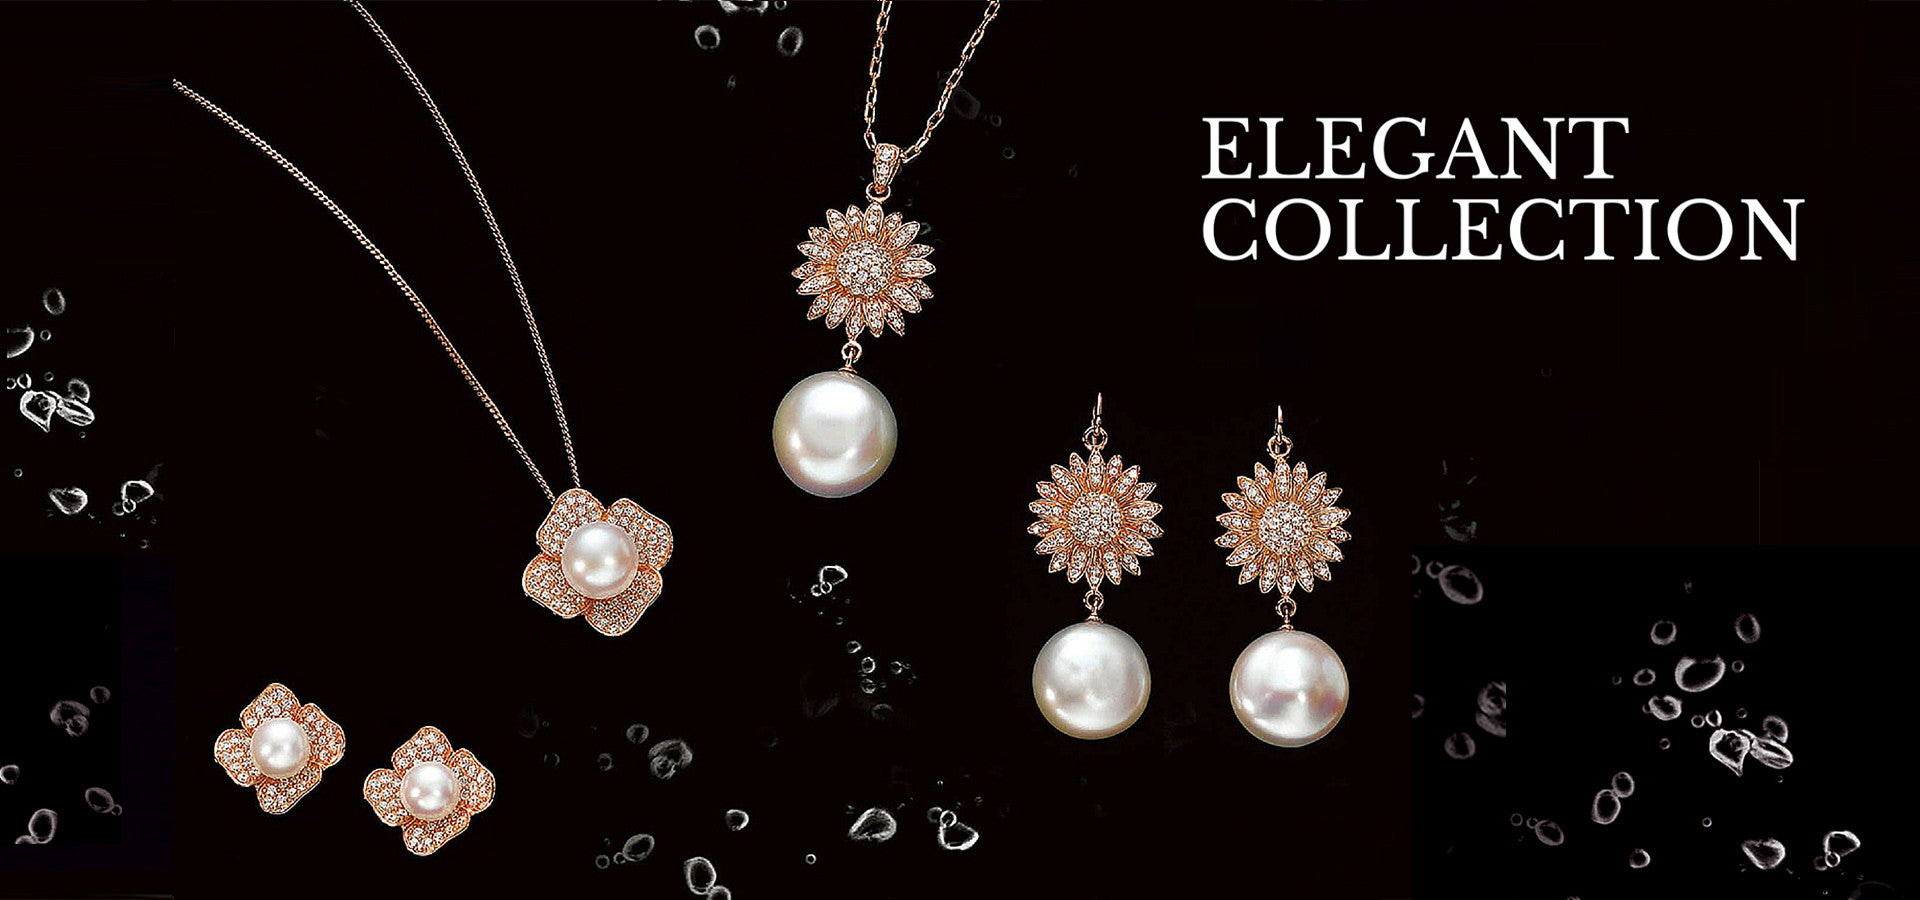 Pearl Silver Jewelry Elegant Collection